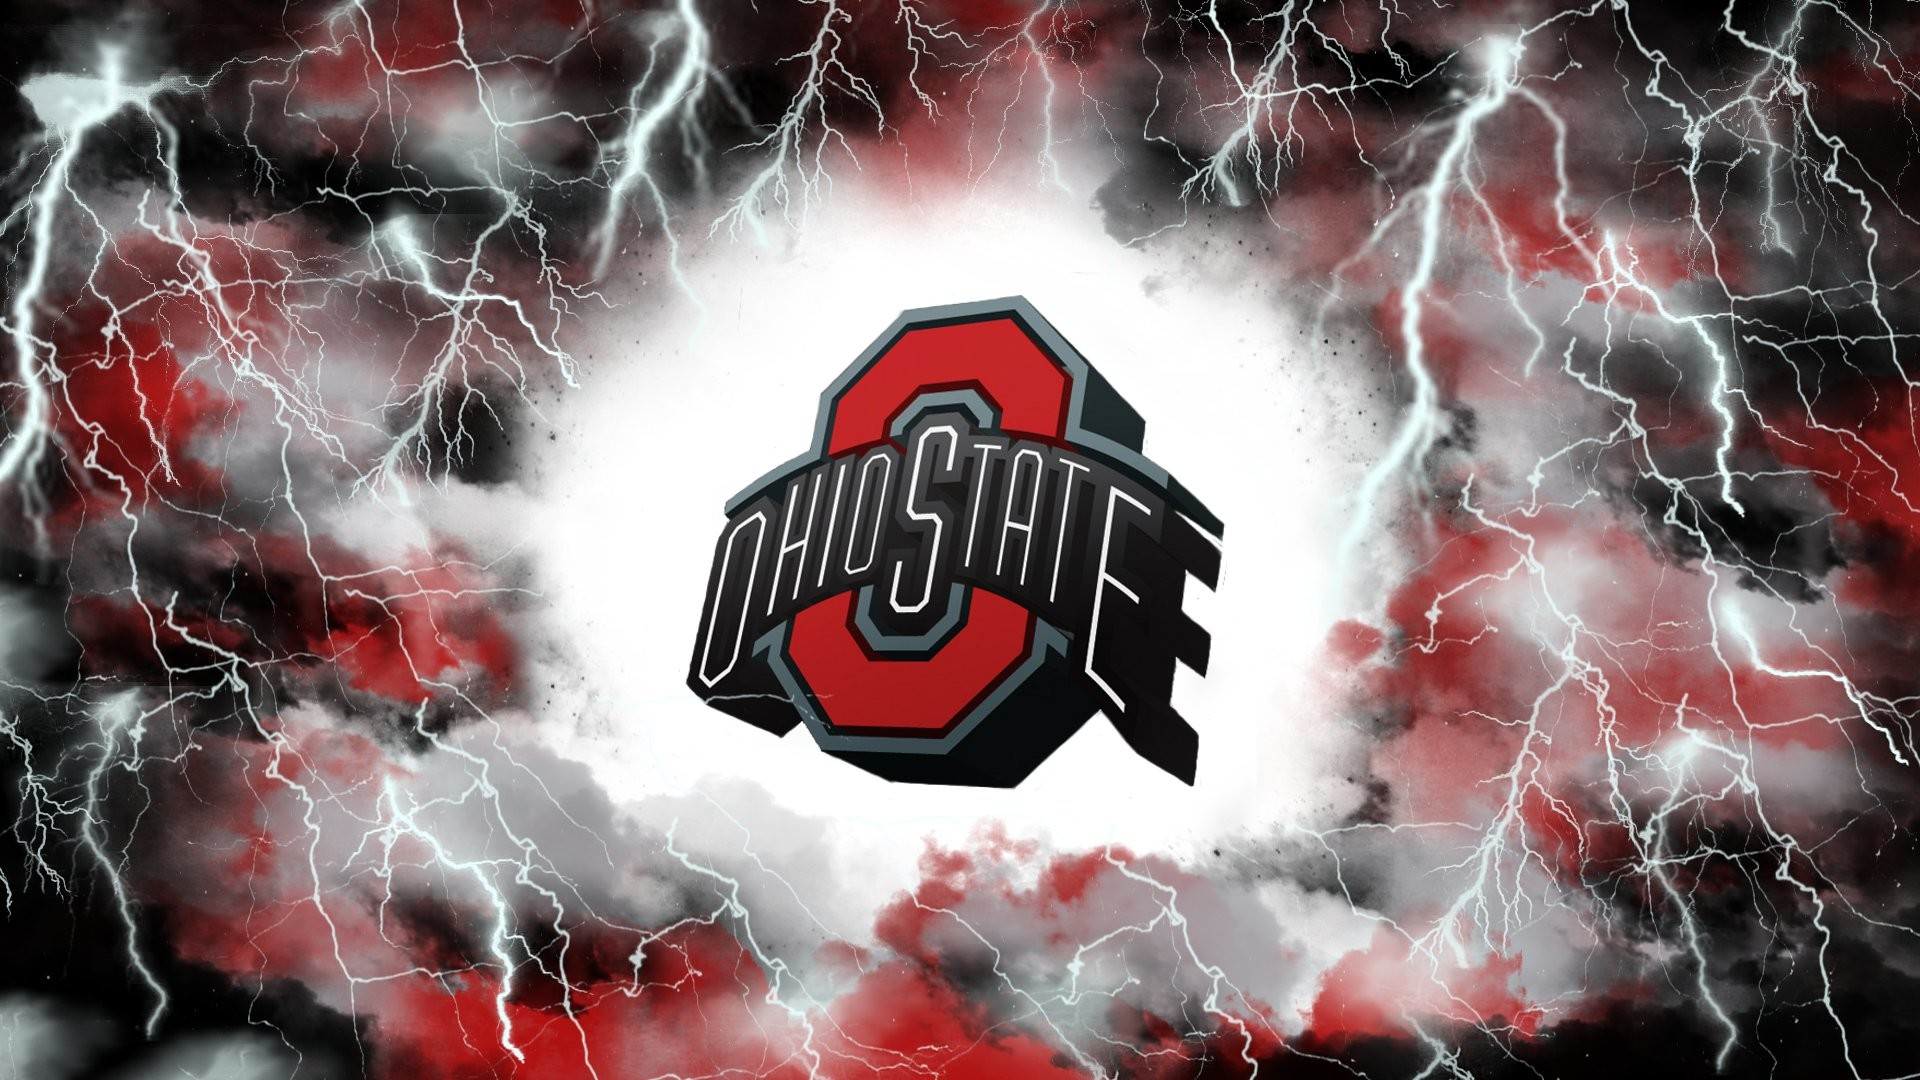 1920x1080 OHIO STATE BUCKEYES college football (21) wallpaper background